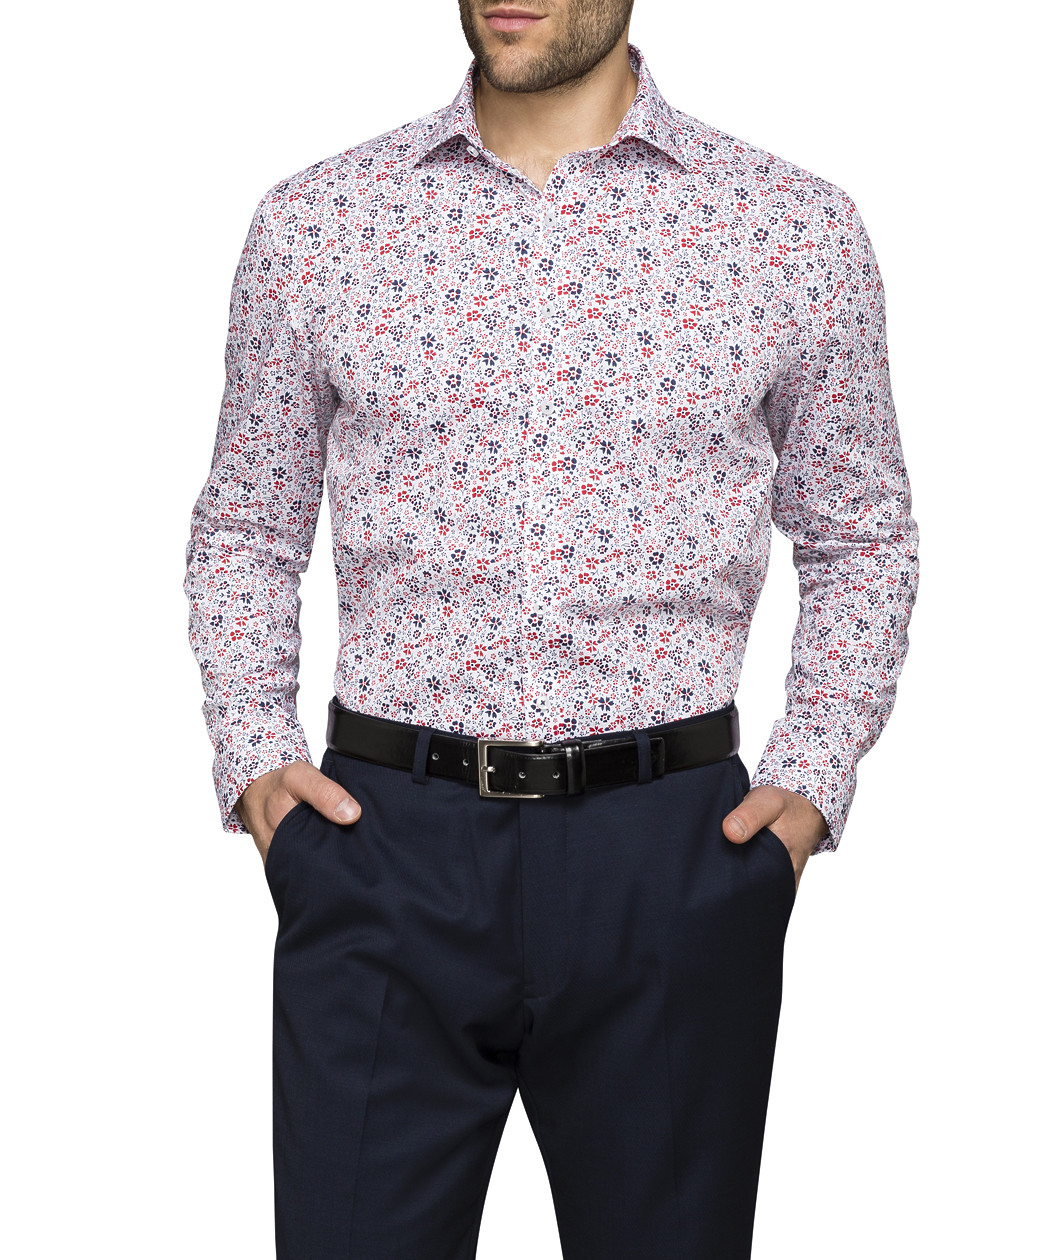 EziBuy's extensive range of men's clothing has everything you need to fit out your wardrobe. Find the perfect pair of shoes to pair with your favourite jeans, or dress to impress in elegantly cut suits, the latest jackets, trousers and shirts.